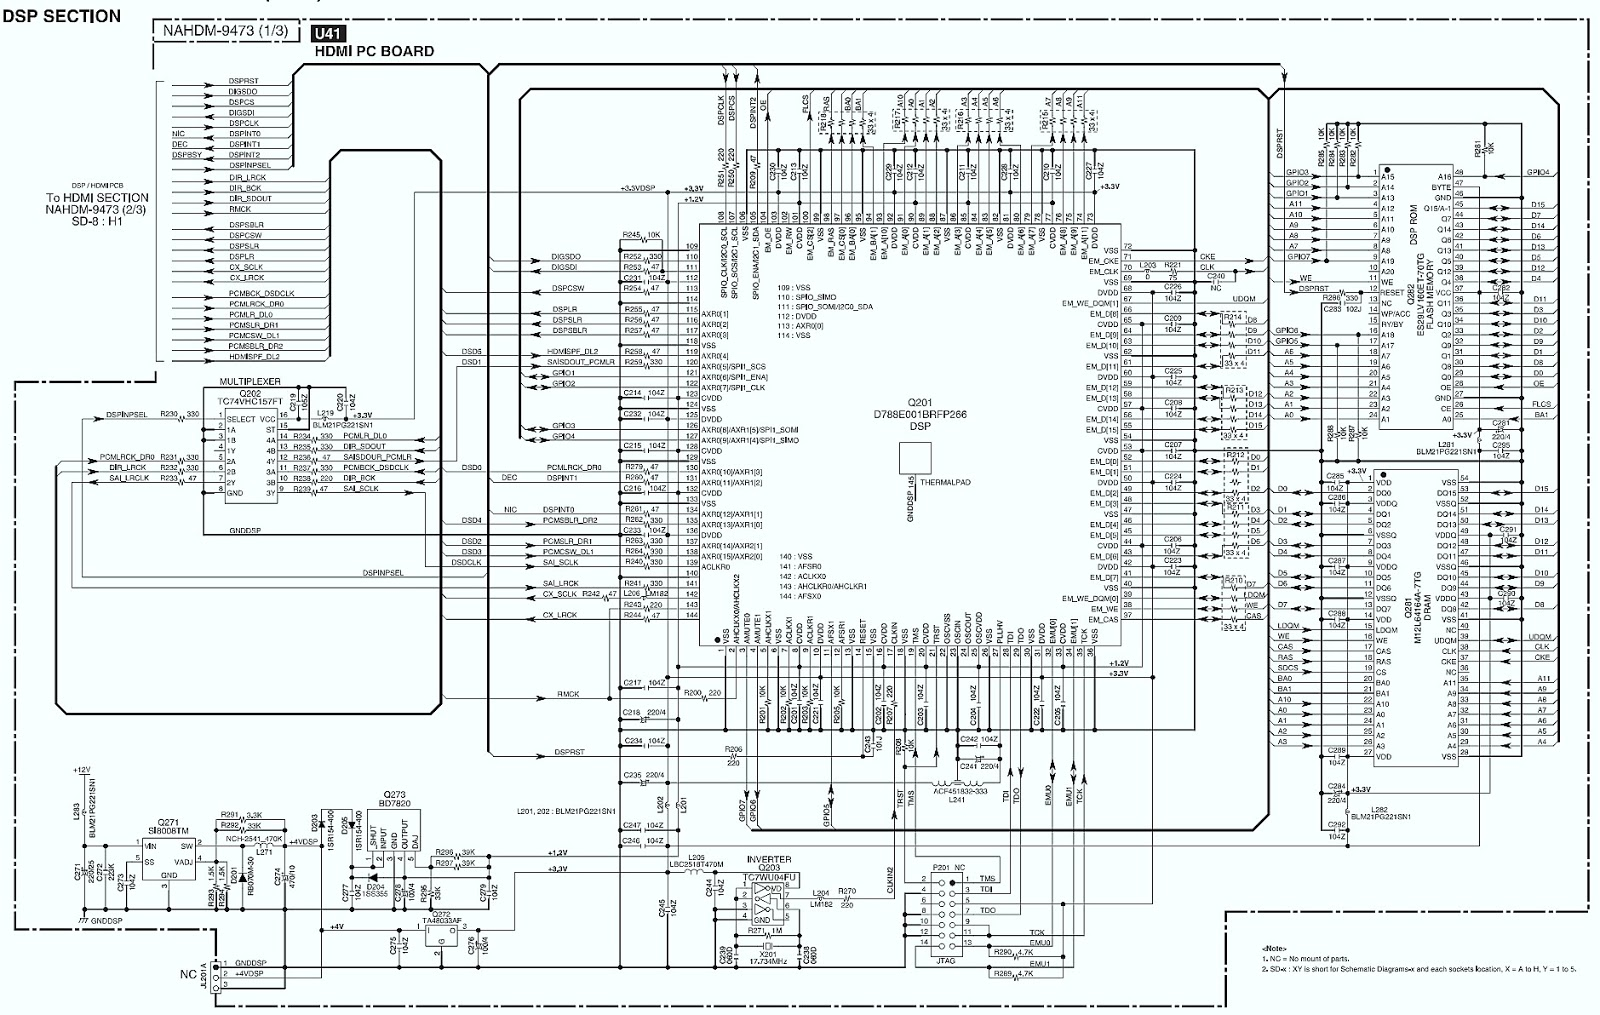 ht panel circuit diagram ht image wiring diagram processor circuit diagram the wiring diagram on ht panel circuit diagram